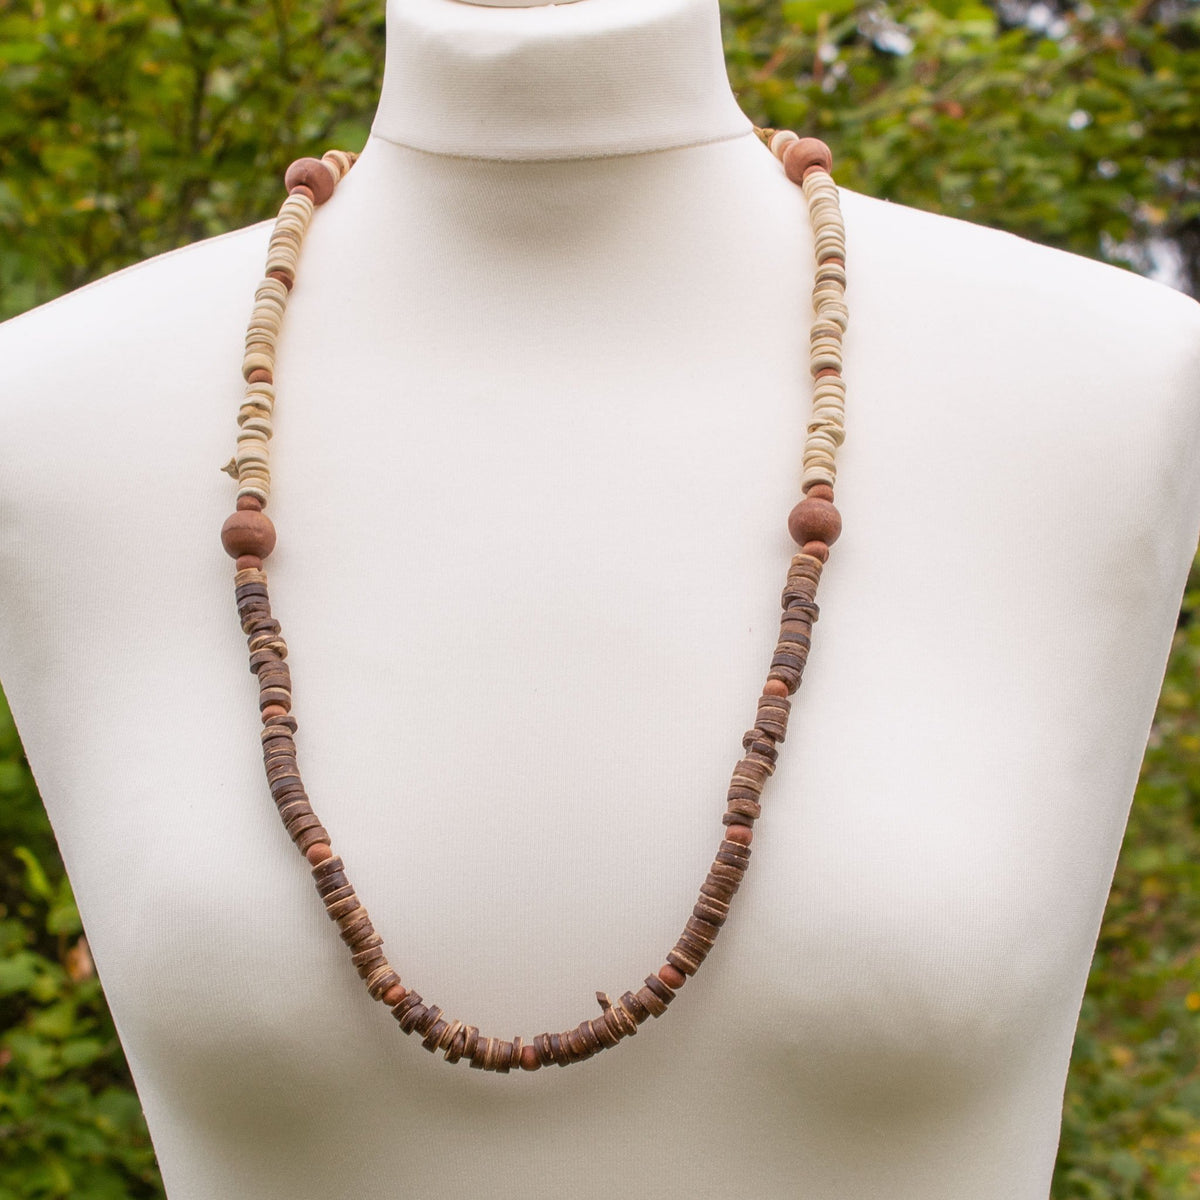 Cream & Brown Wooden Bead Necklace | Necklace - The Naughty Shrew